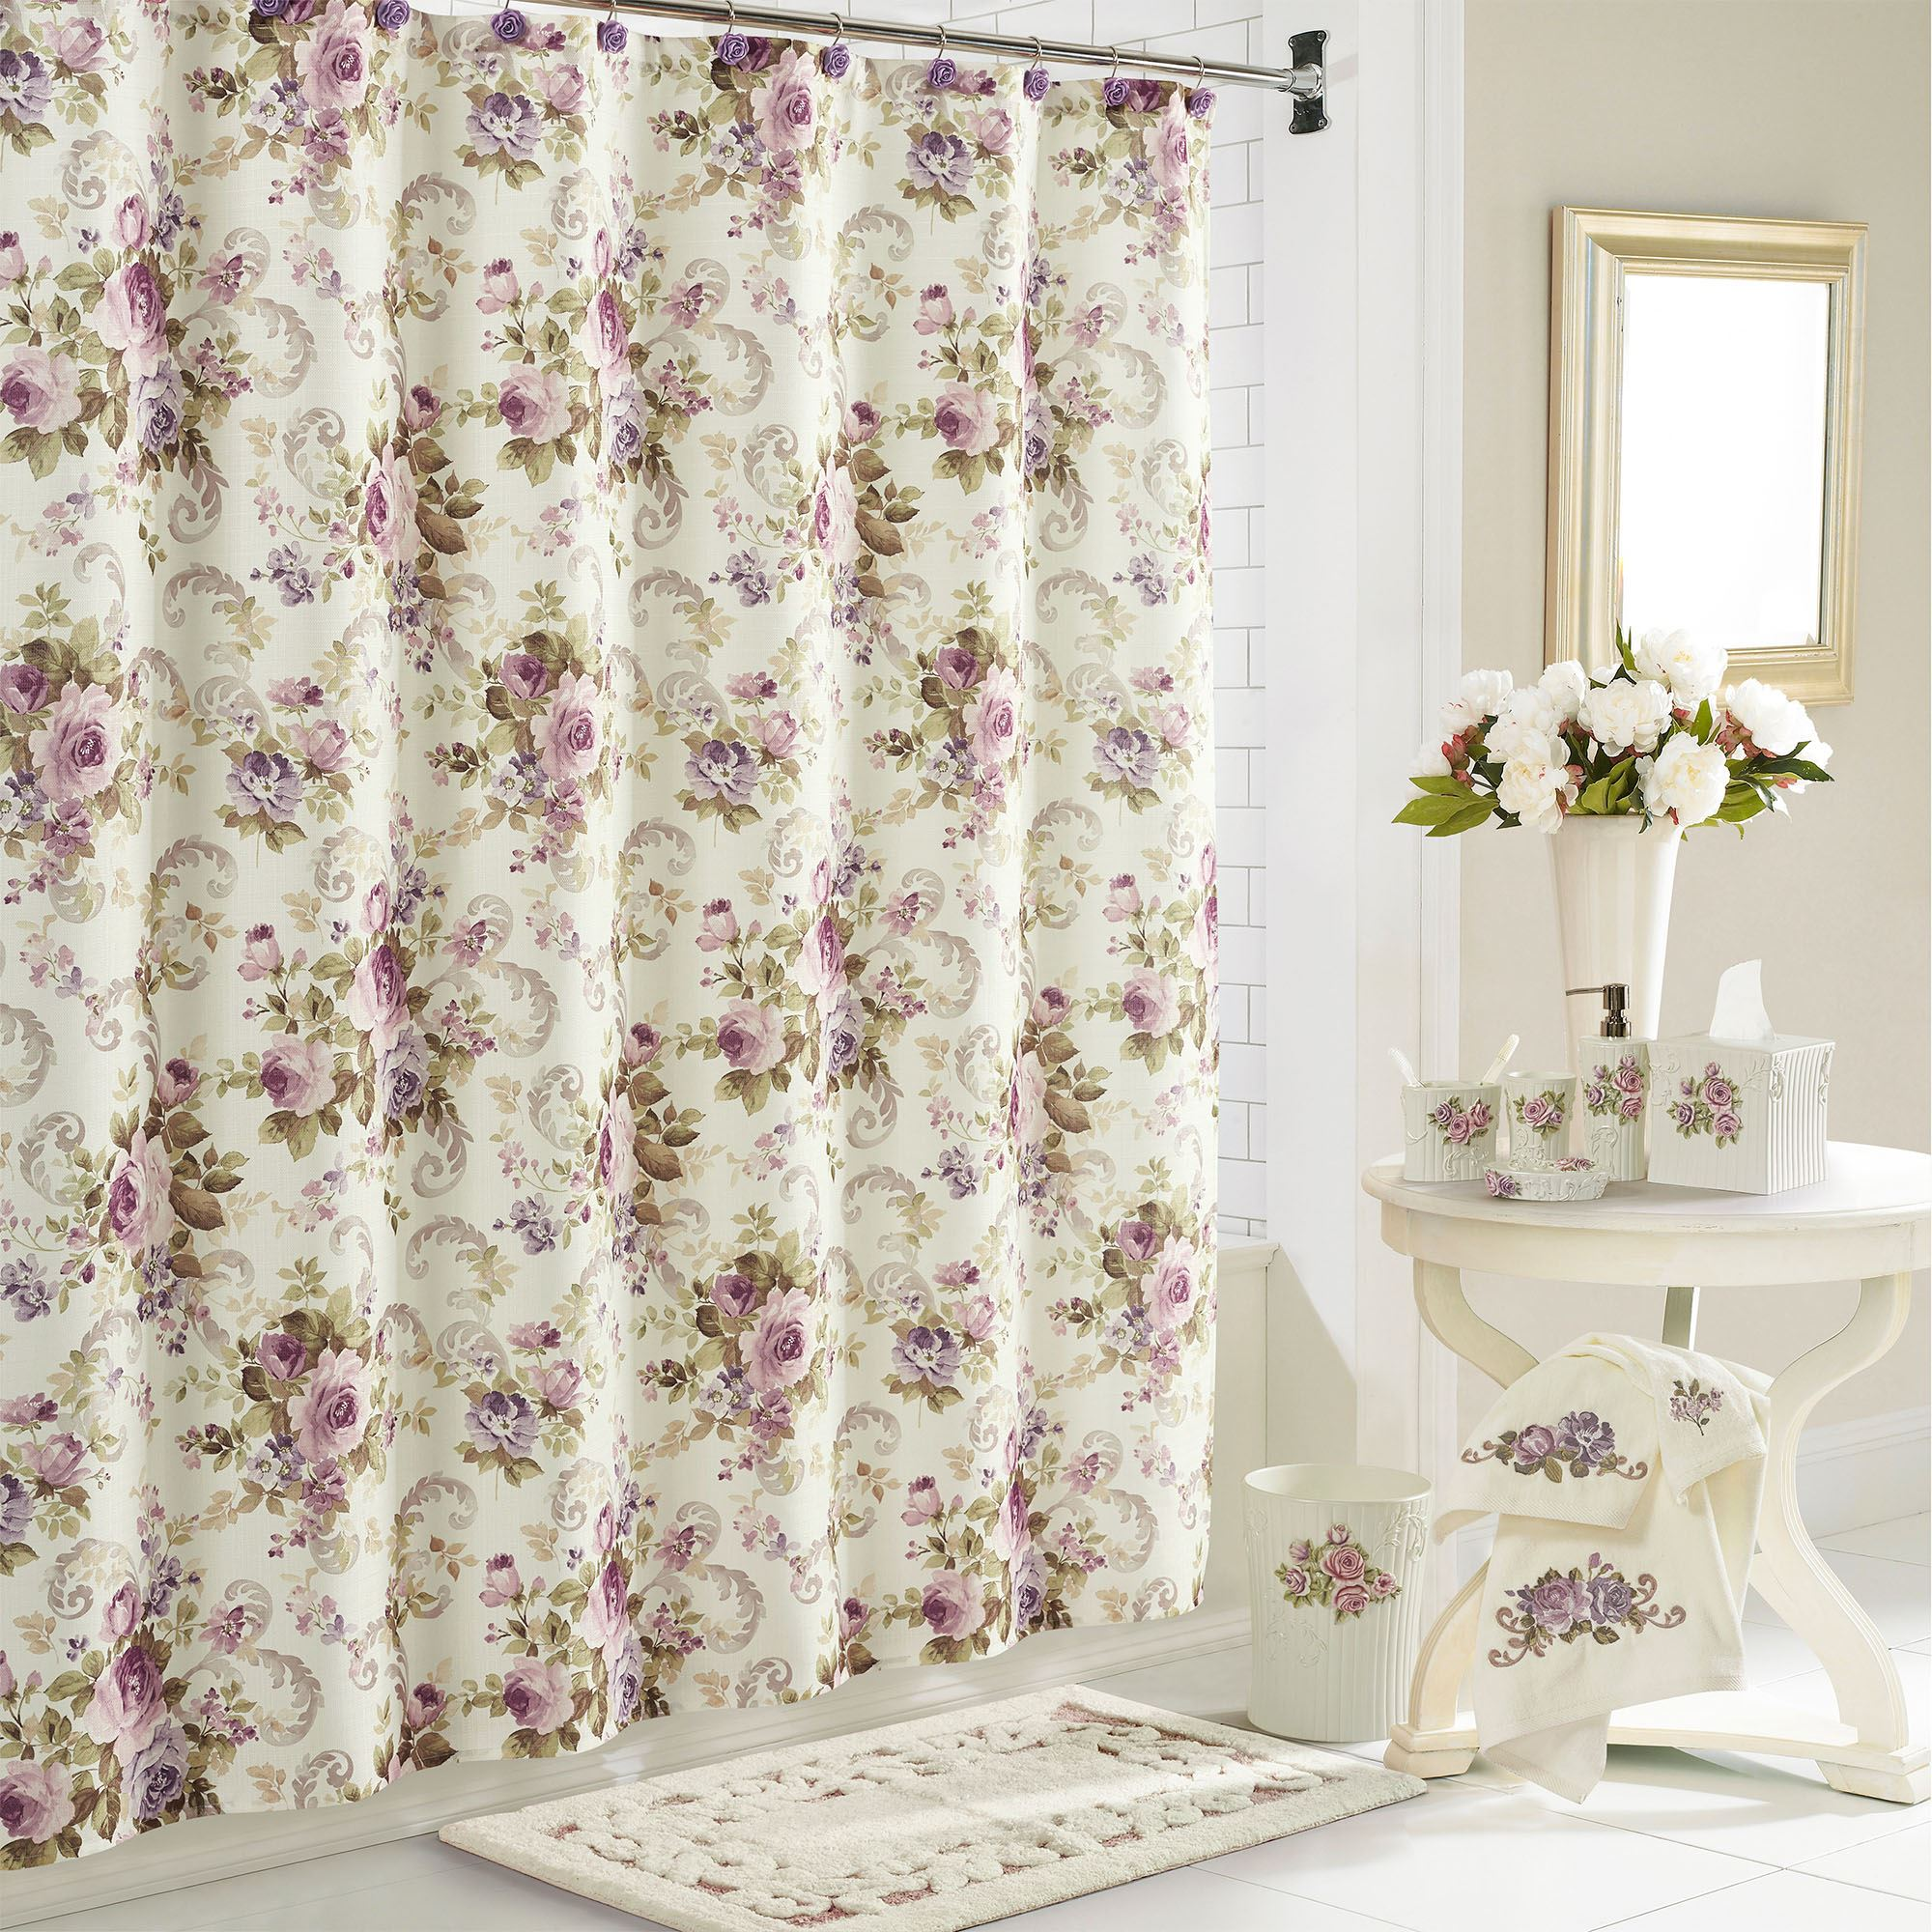 Chambord Floral Shower Curtain By Royal Court Home